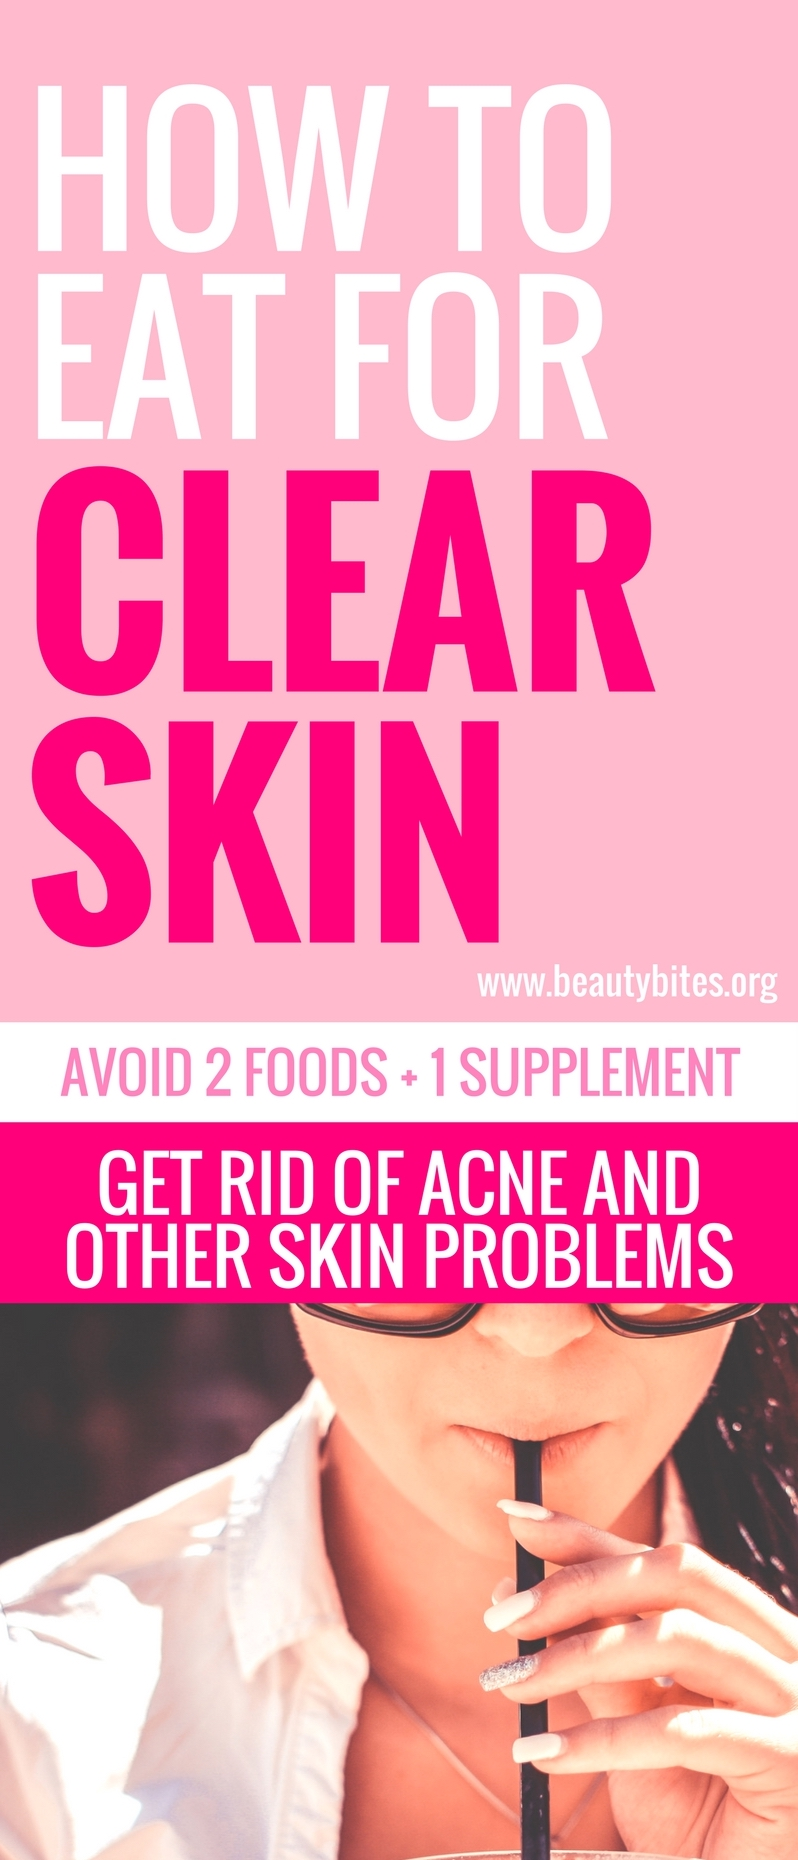 Struggling with acne and breakouts is not a fun ride. However, if you eliminate just two foods from your diet, studies show things will get a LOT better. And if you're taking any fitness supplements, there's one that could actually be causing your acne - even if you had none to begin with.